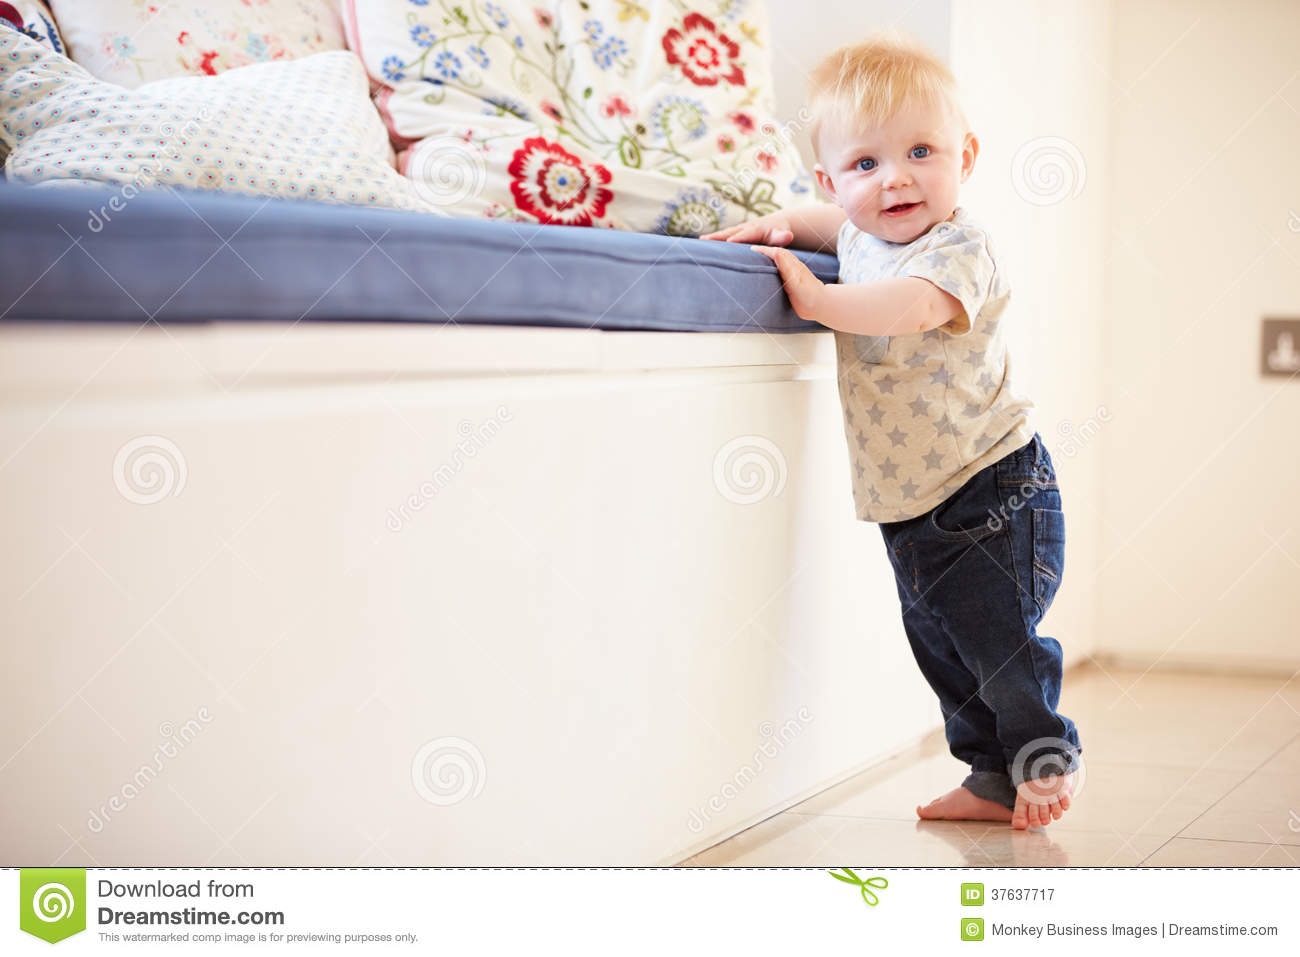 Young Boy Learning To Walk By Holding Onto Furniture